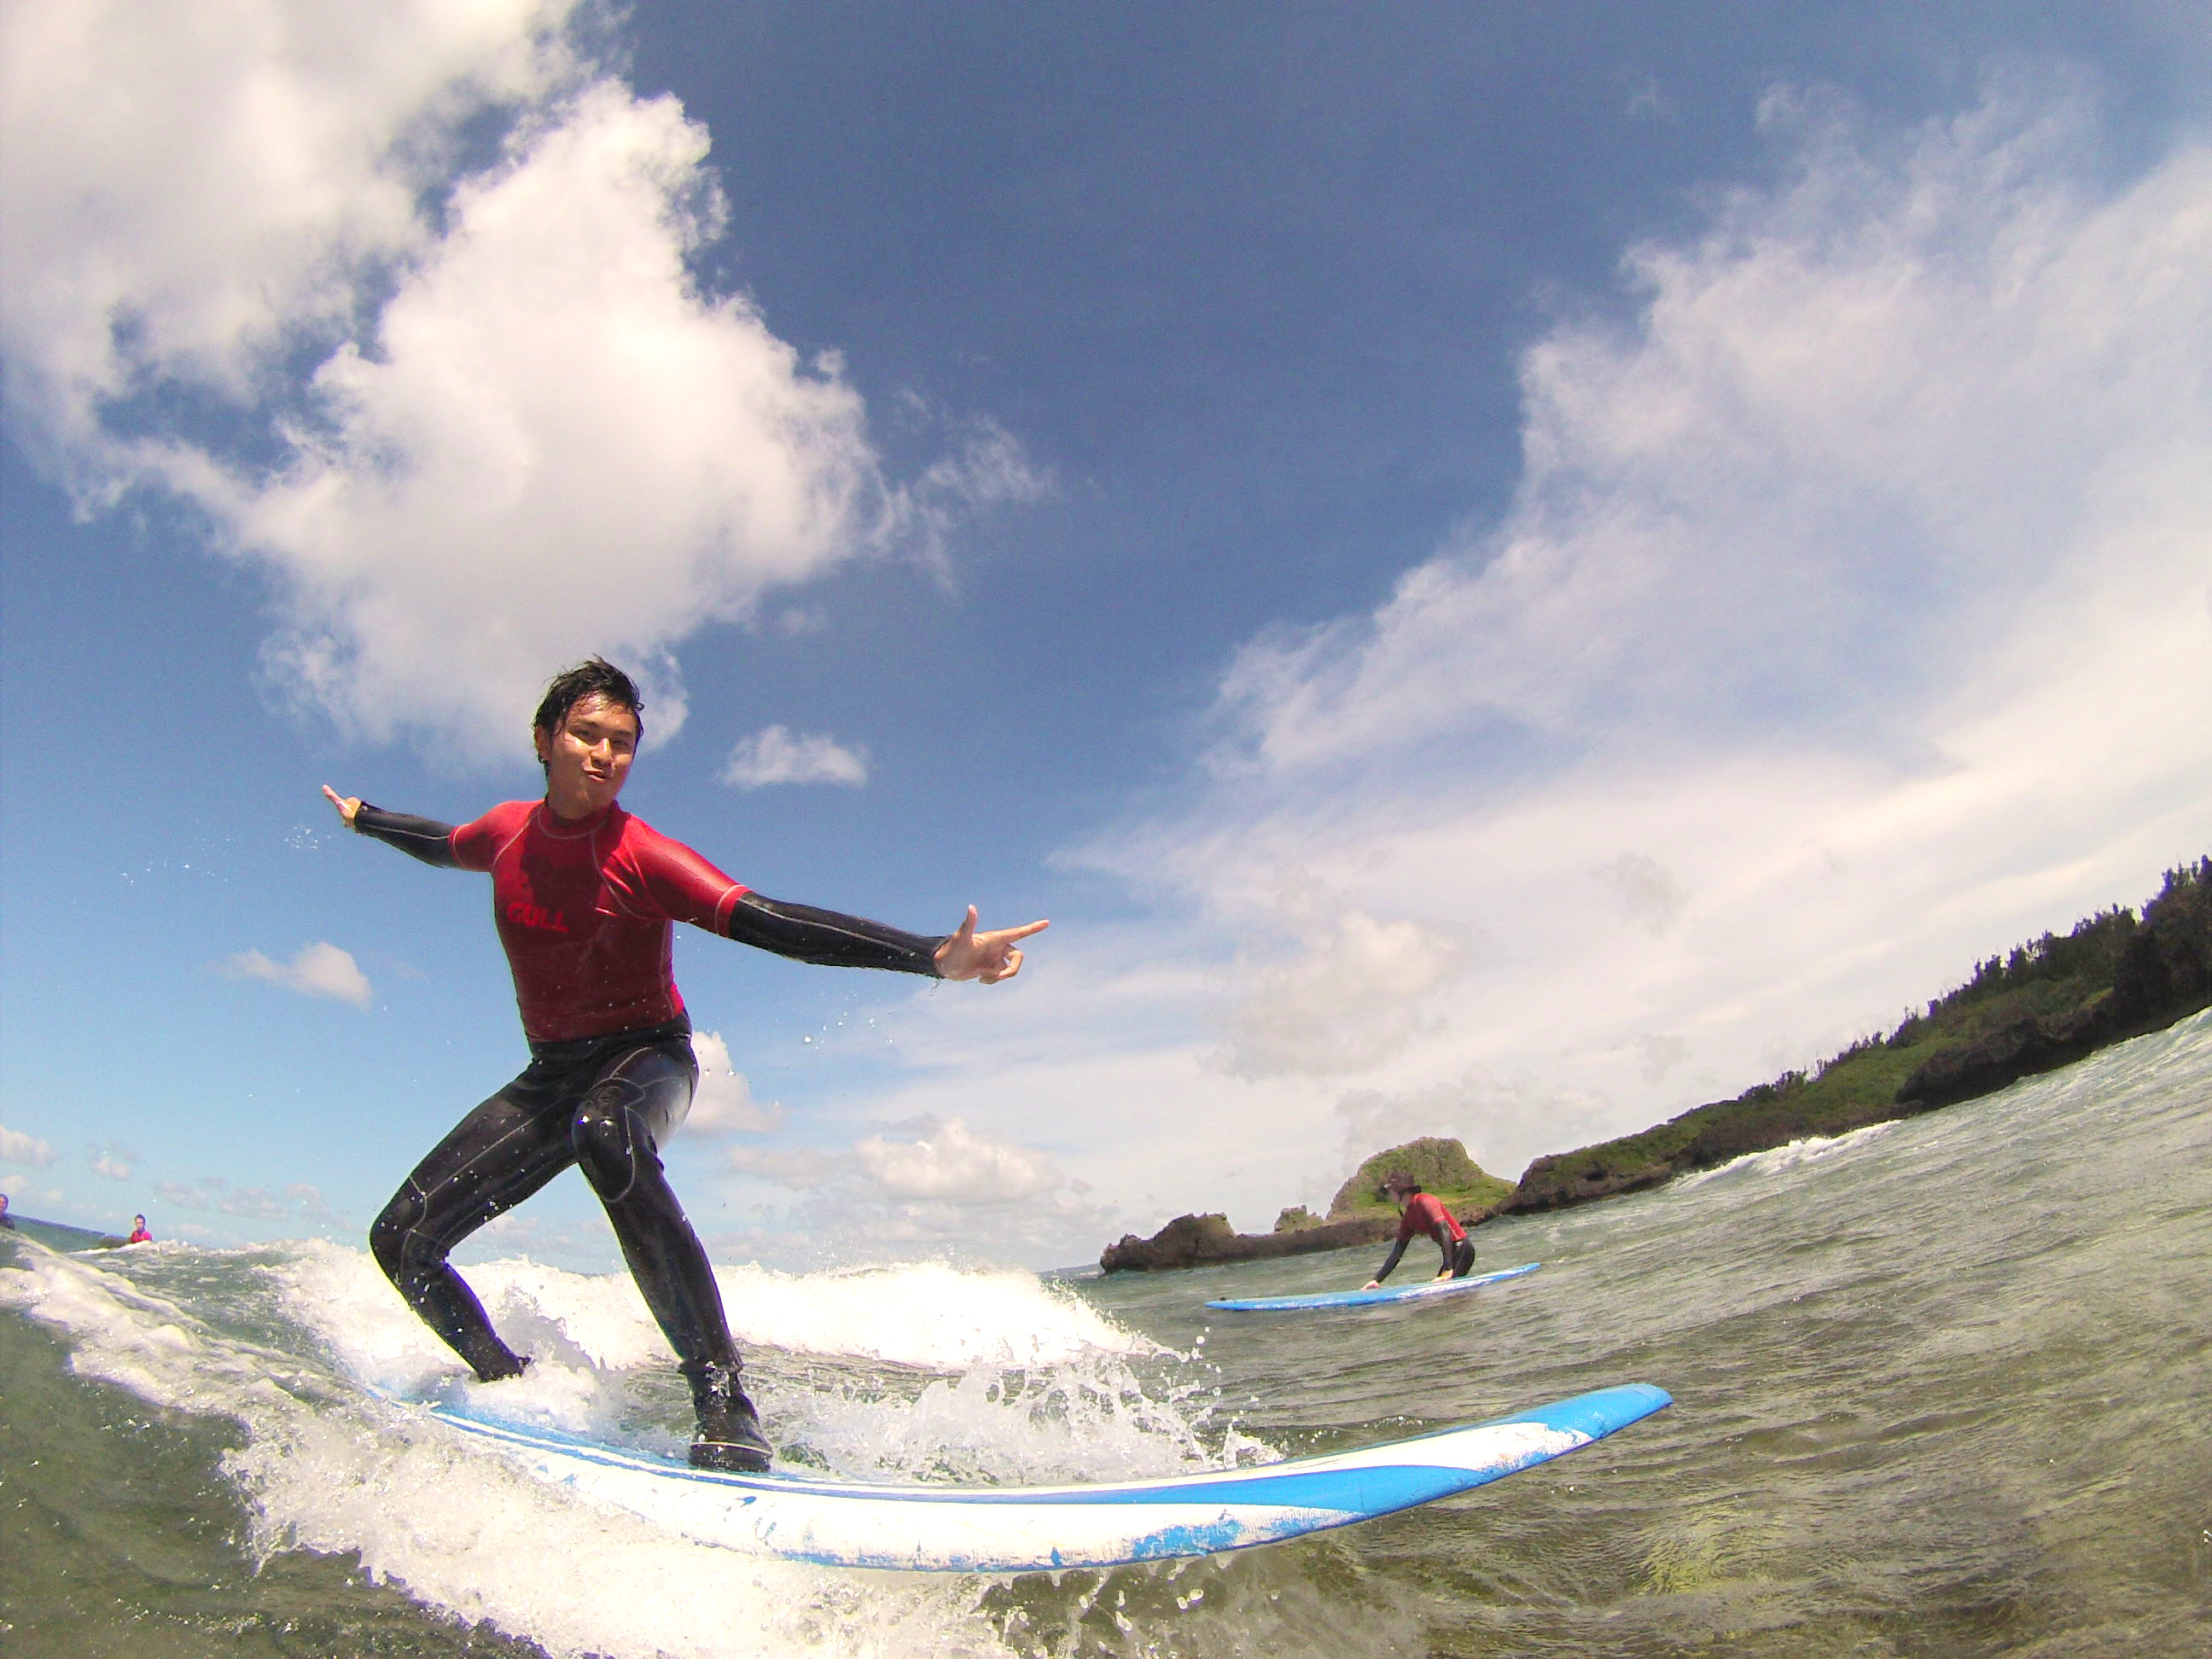 Surfing for the first time5